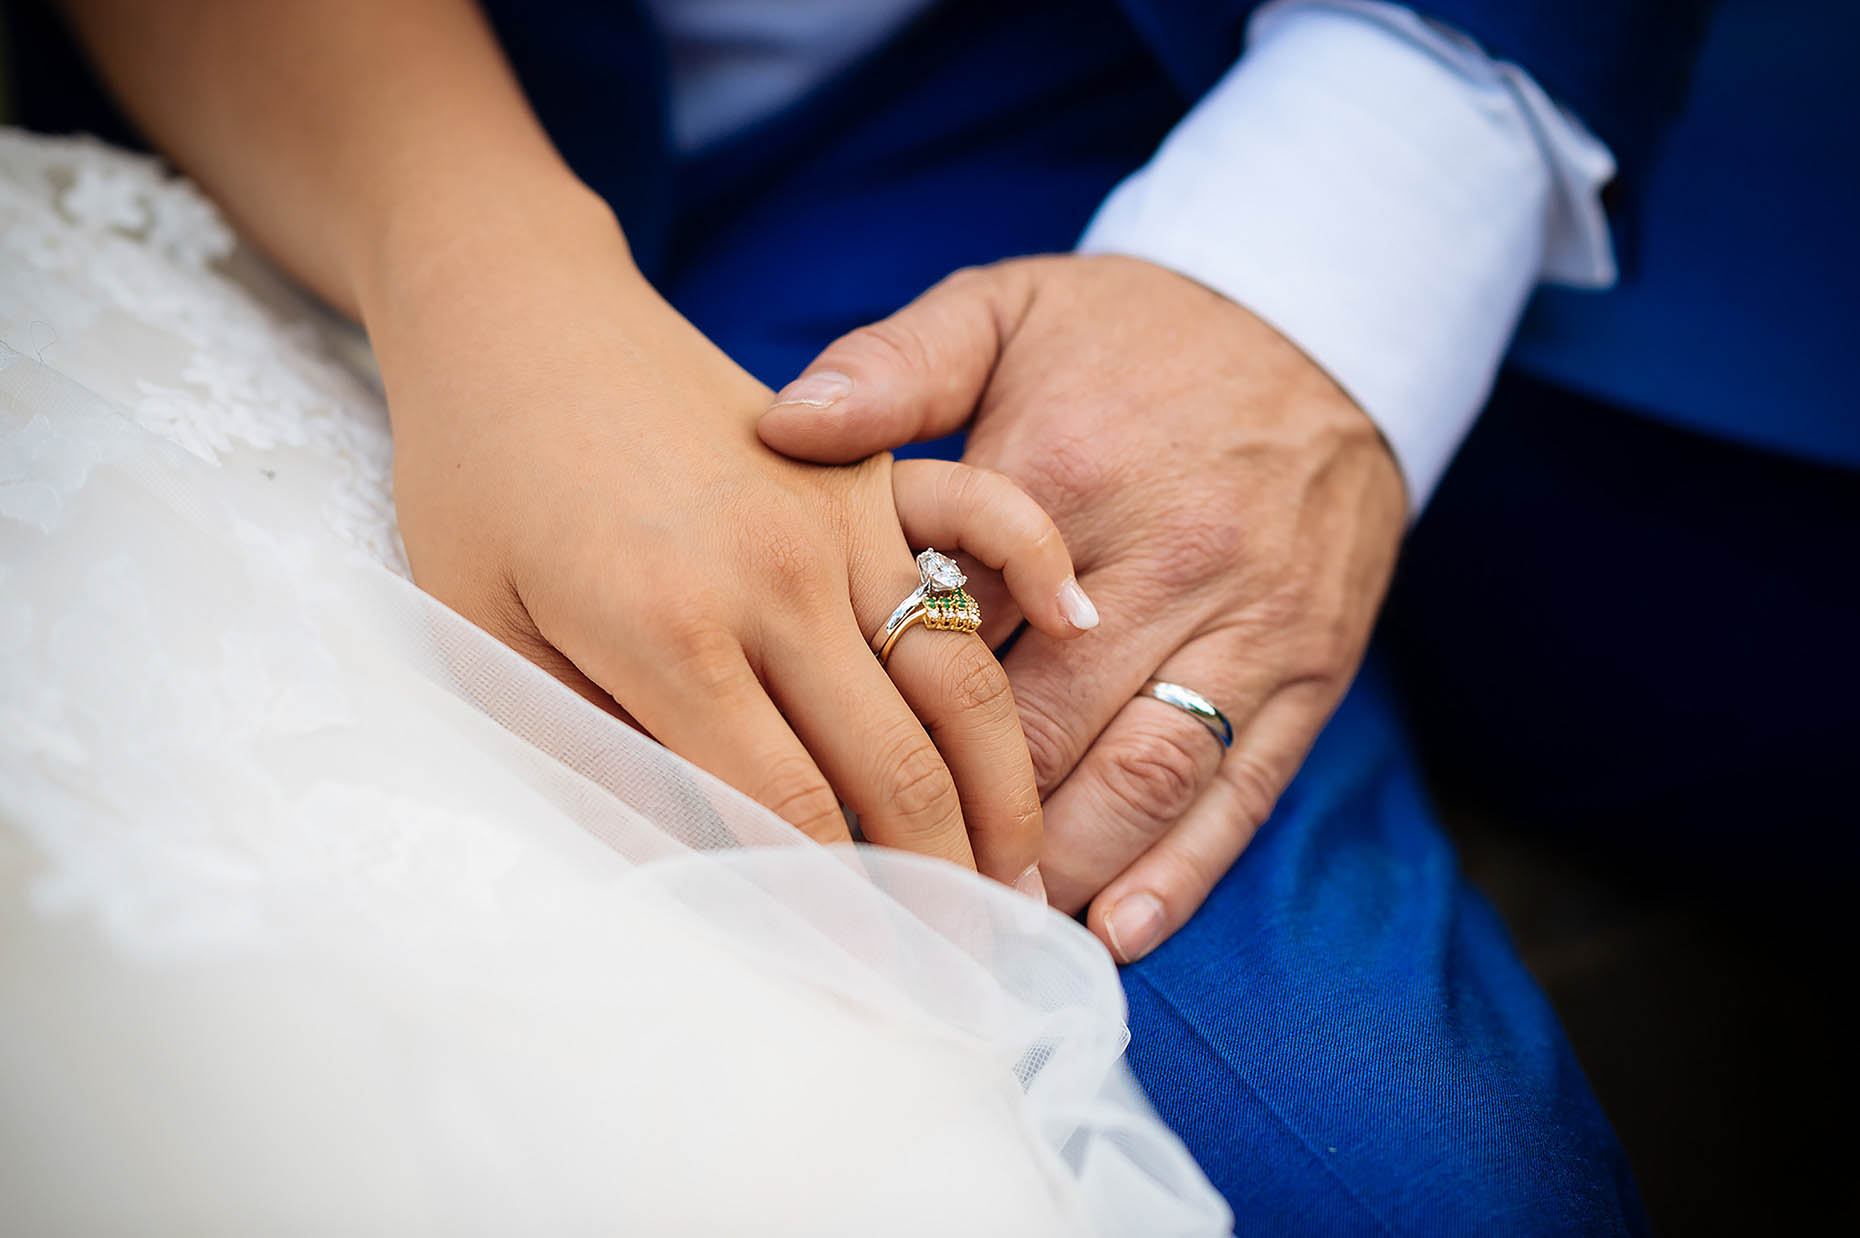 chay-felix-rings-detail-beaumanor-hall-leicestershire-wedding-photography-22